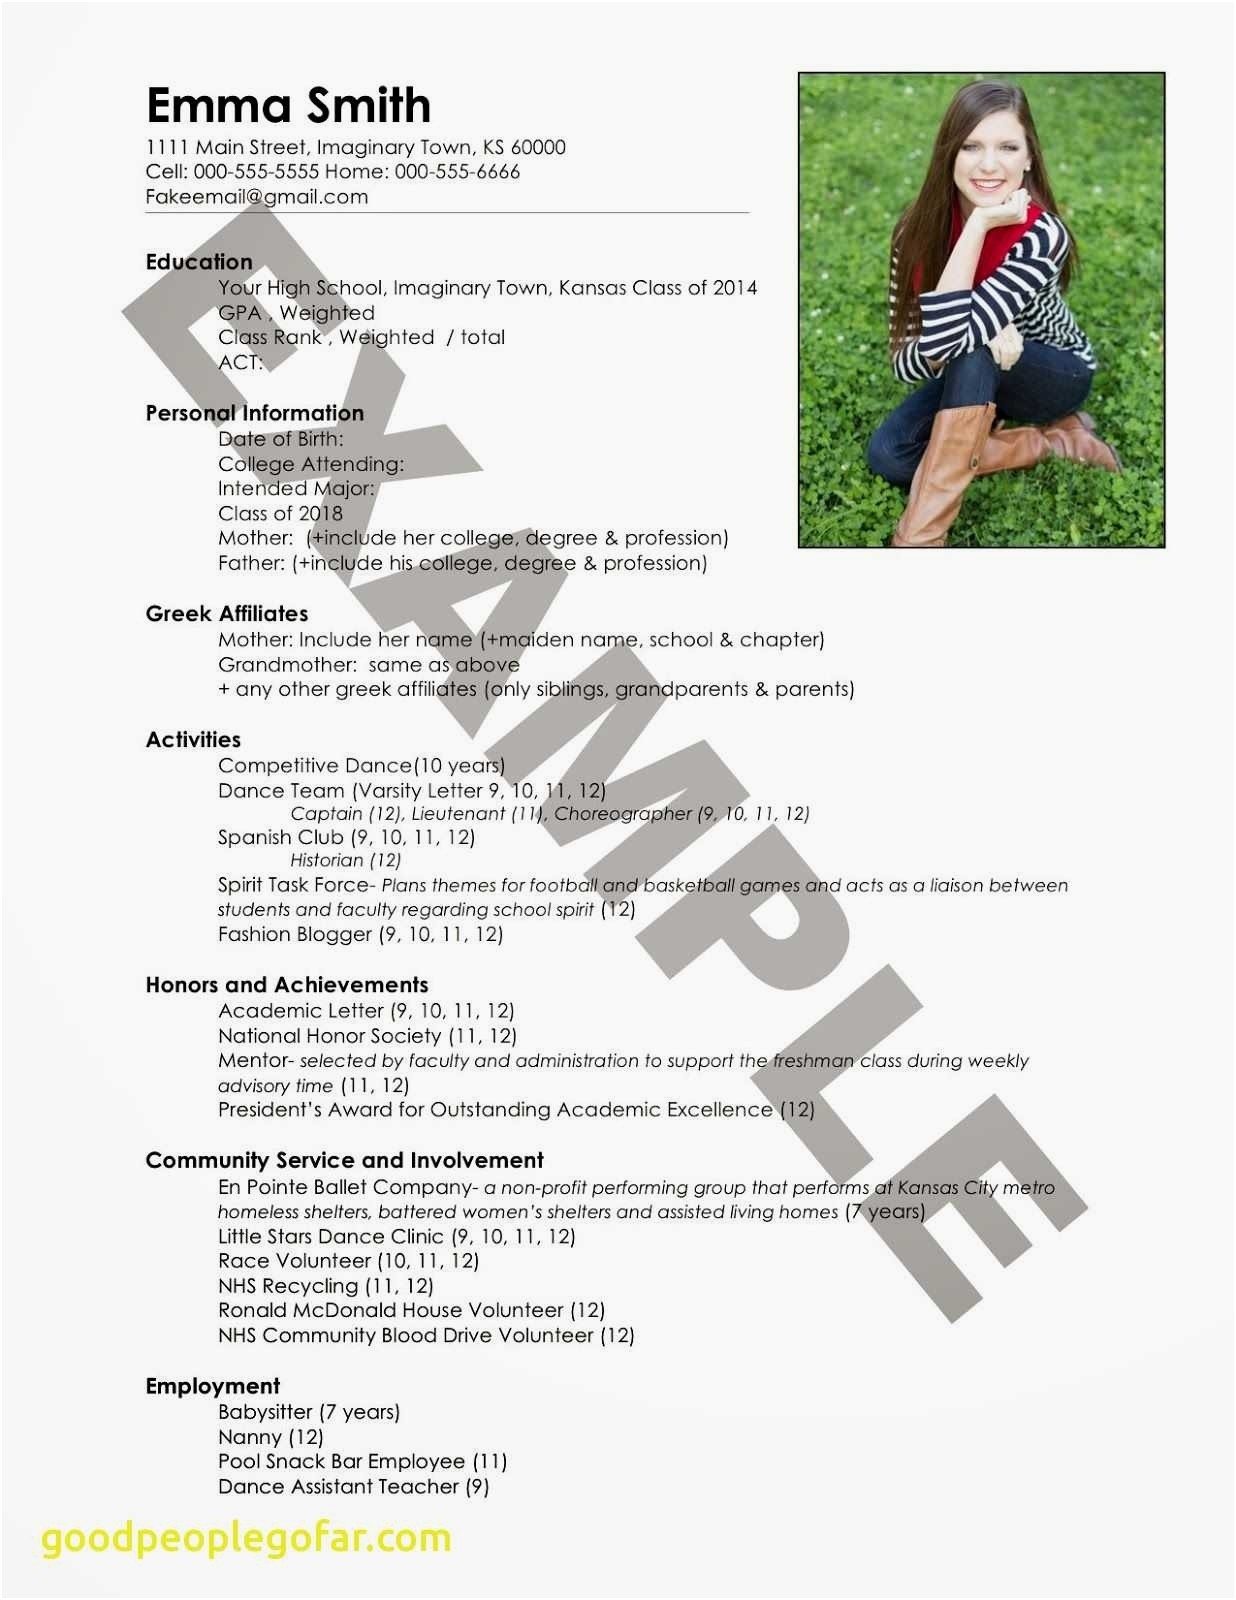 sorority rush resume template Collection-Good Things to Put A Resume New Lovely Entry Level Resume sorority Resume 0d Things 9-p